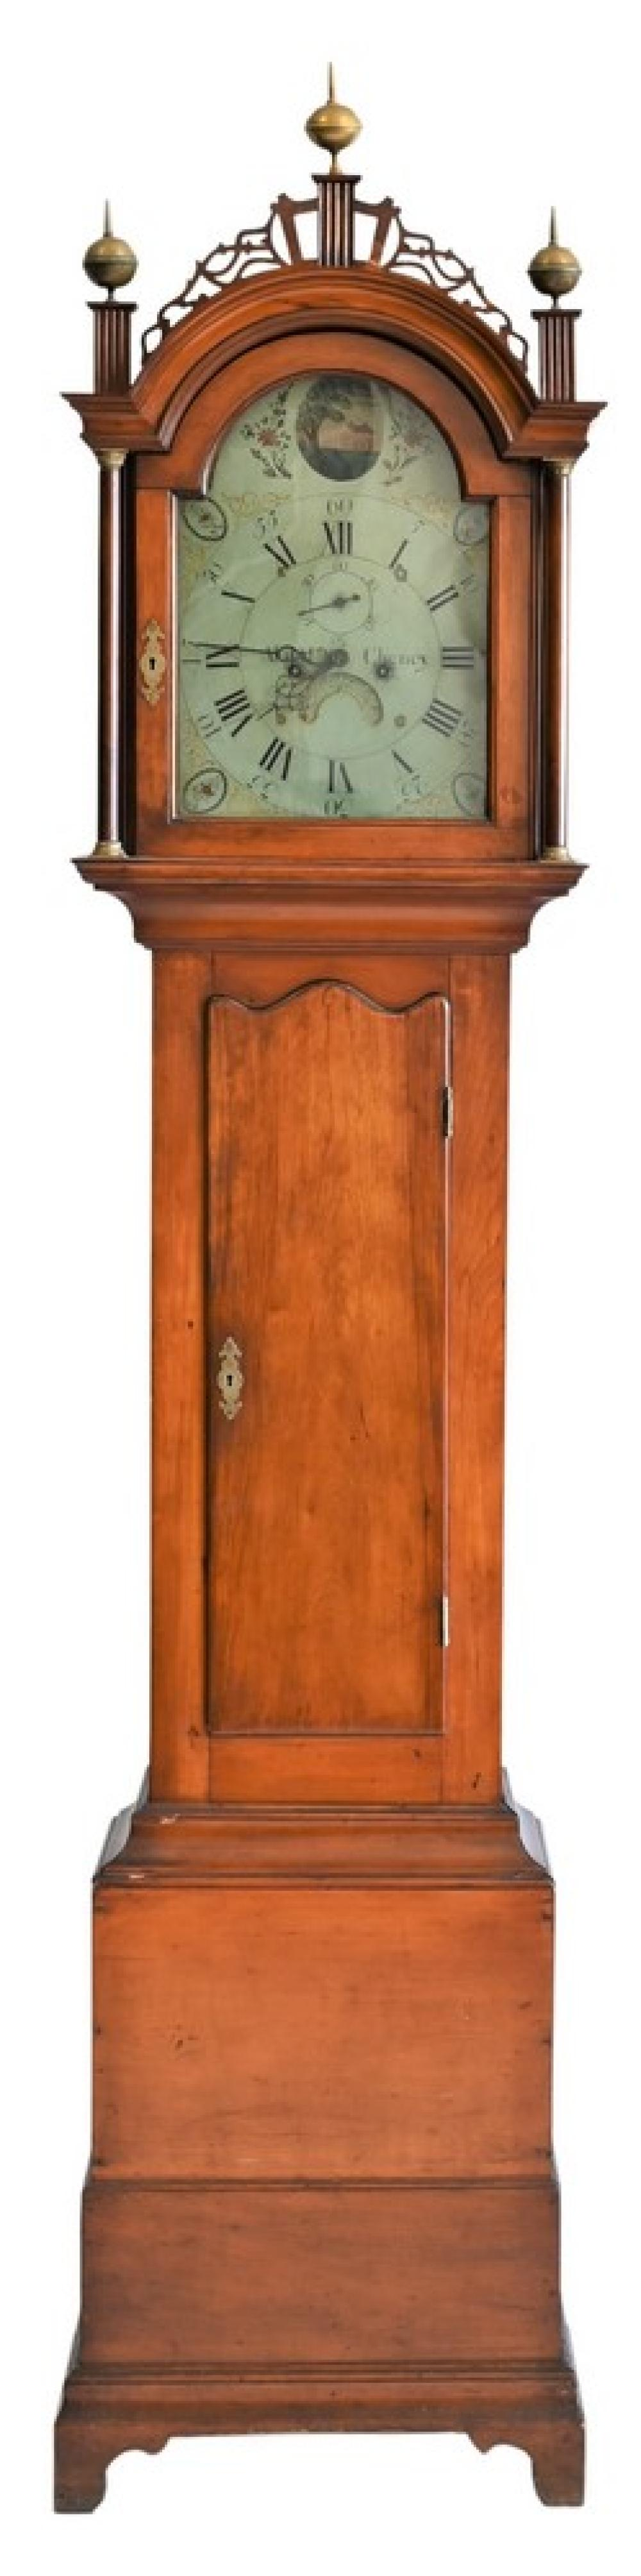 Asahel Cheney Tall Clockhaving fretwork top over tombstone door, over shaped top door, on base with bracket feet, painted metal dia...